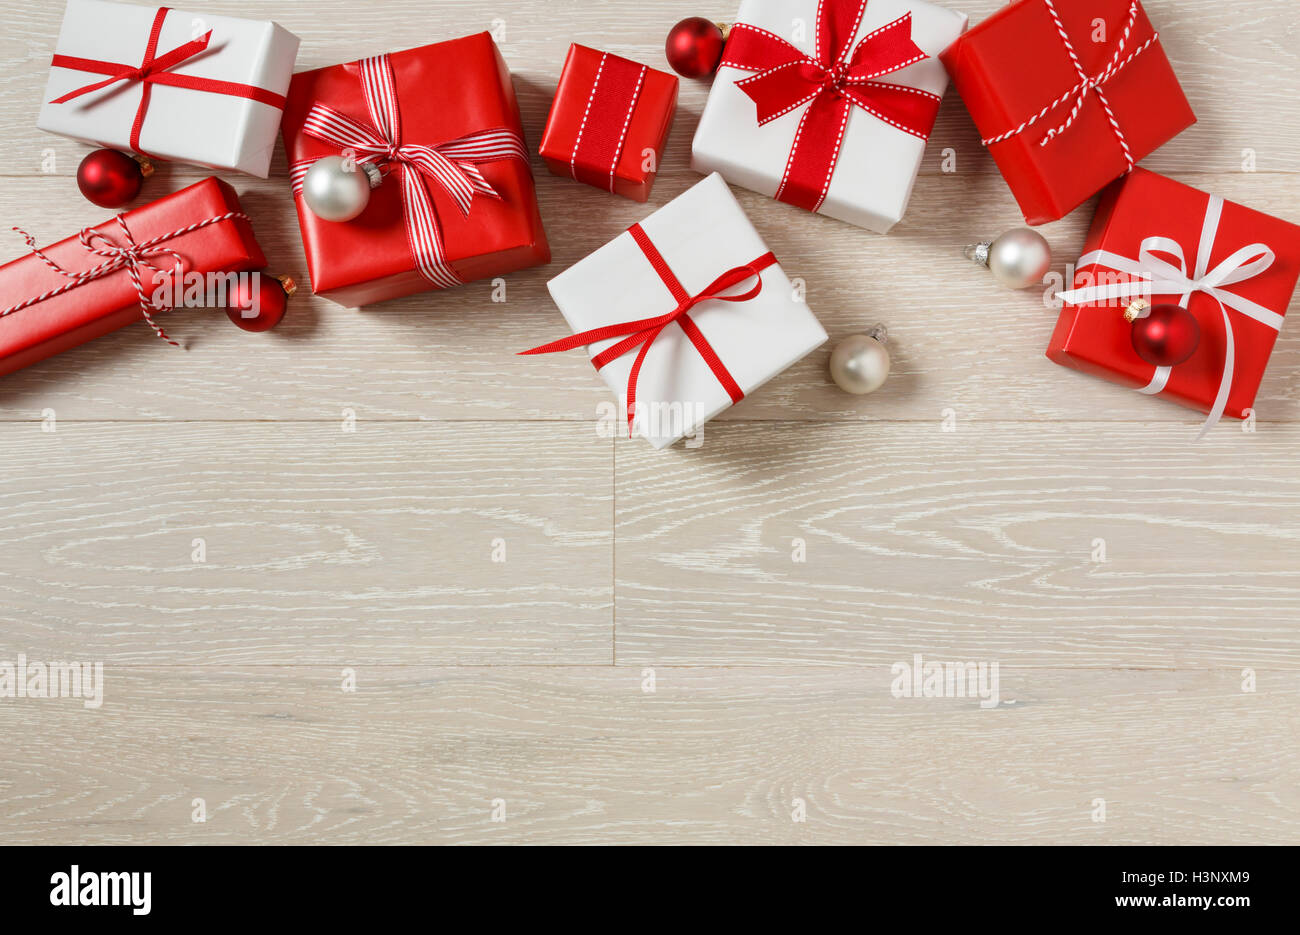 Christmas gifts presents on rustic wood background. Red and white ...